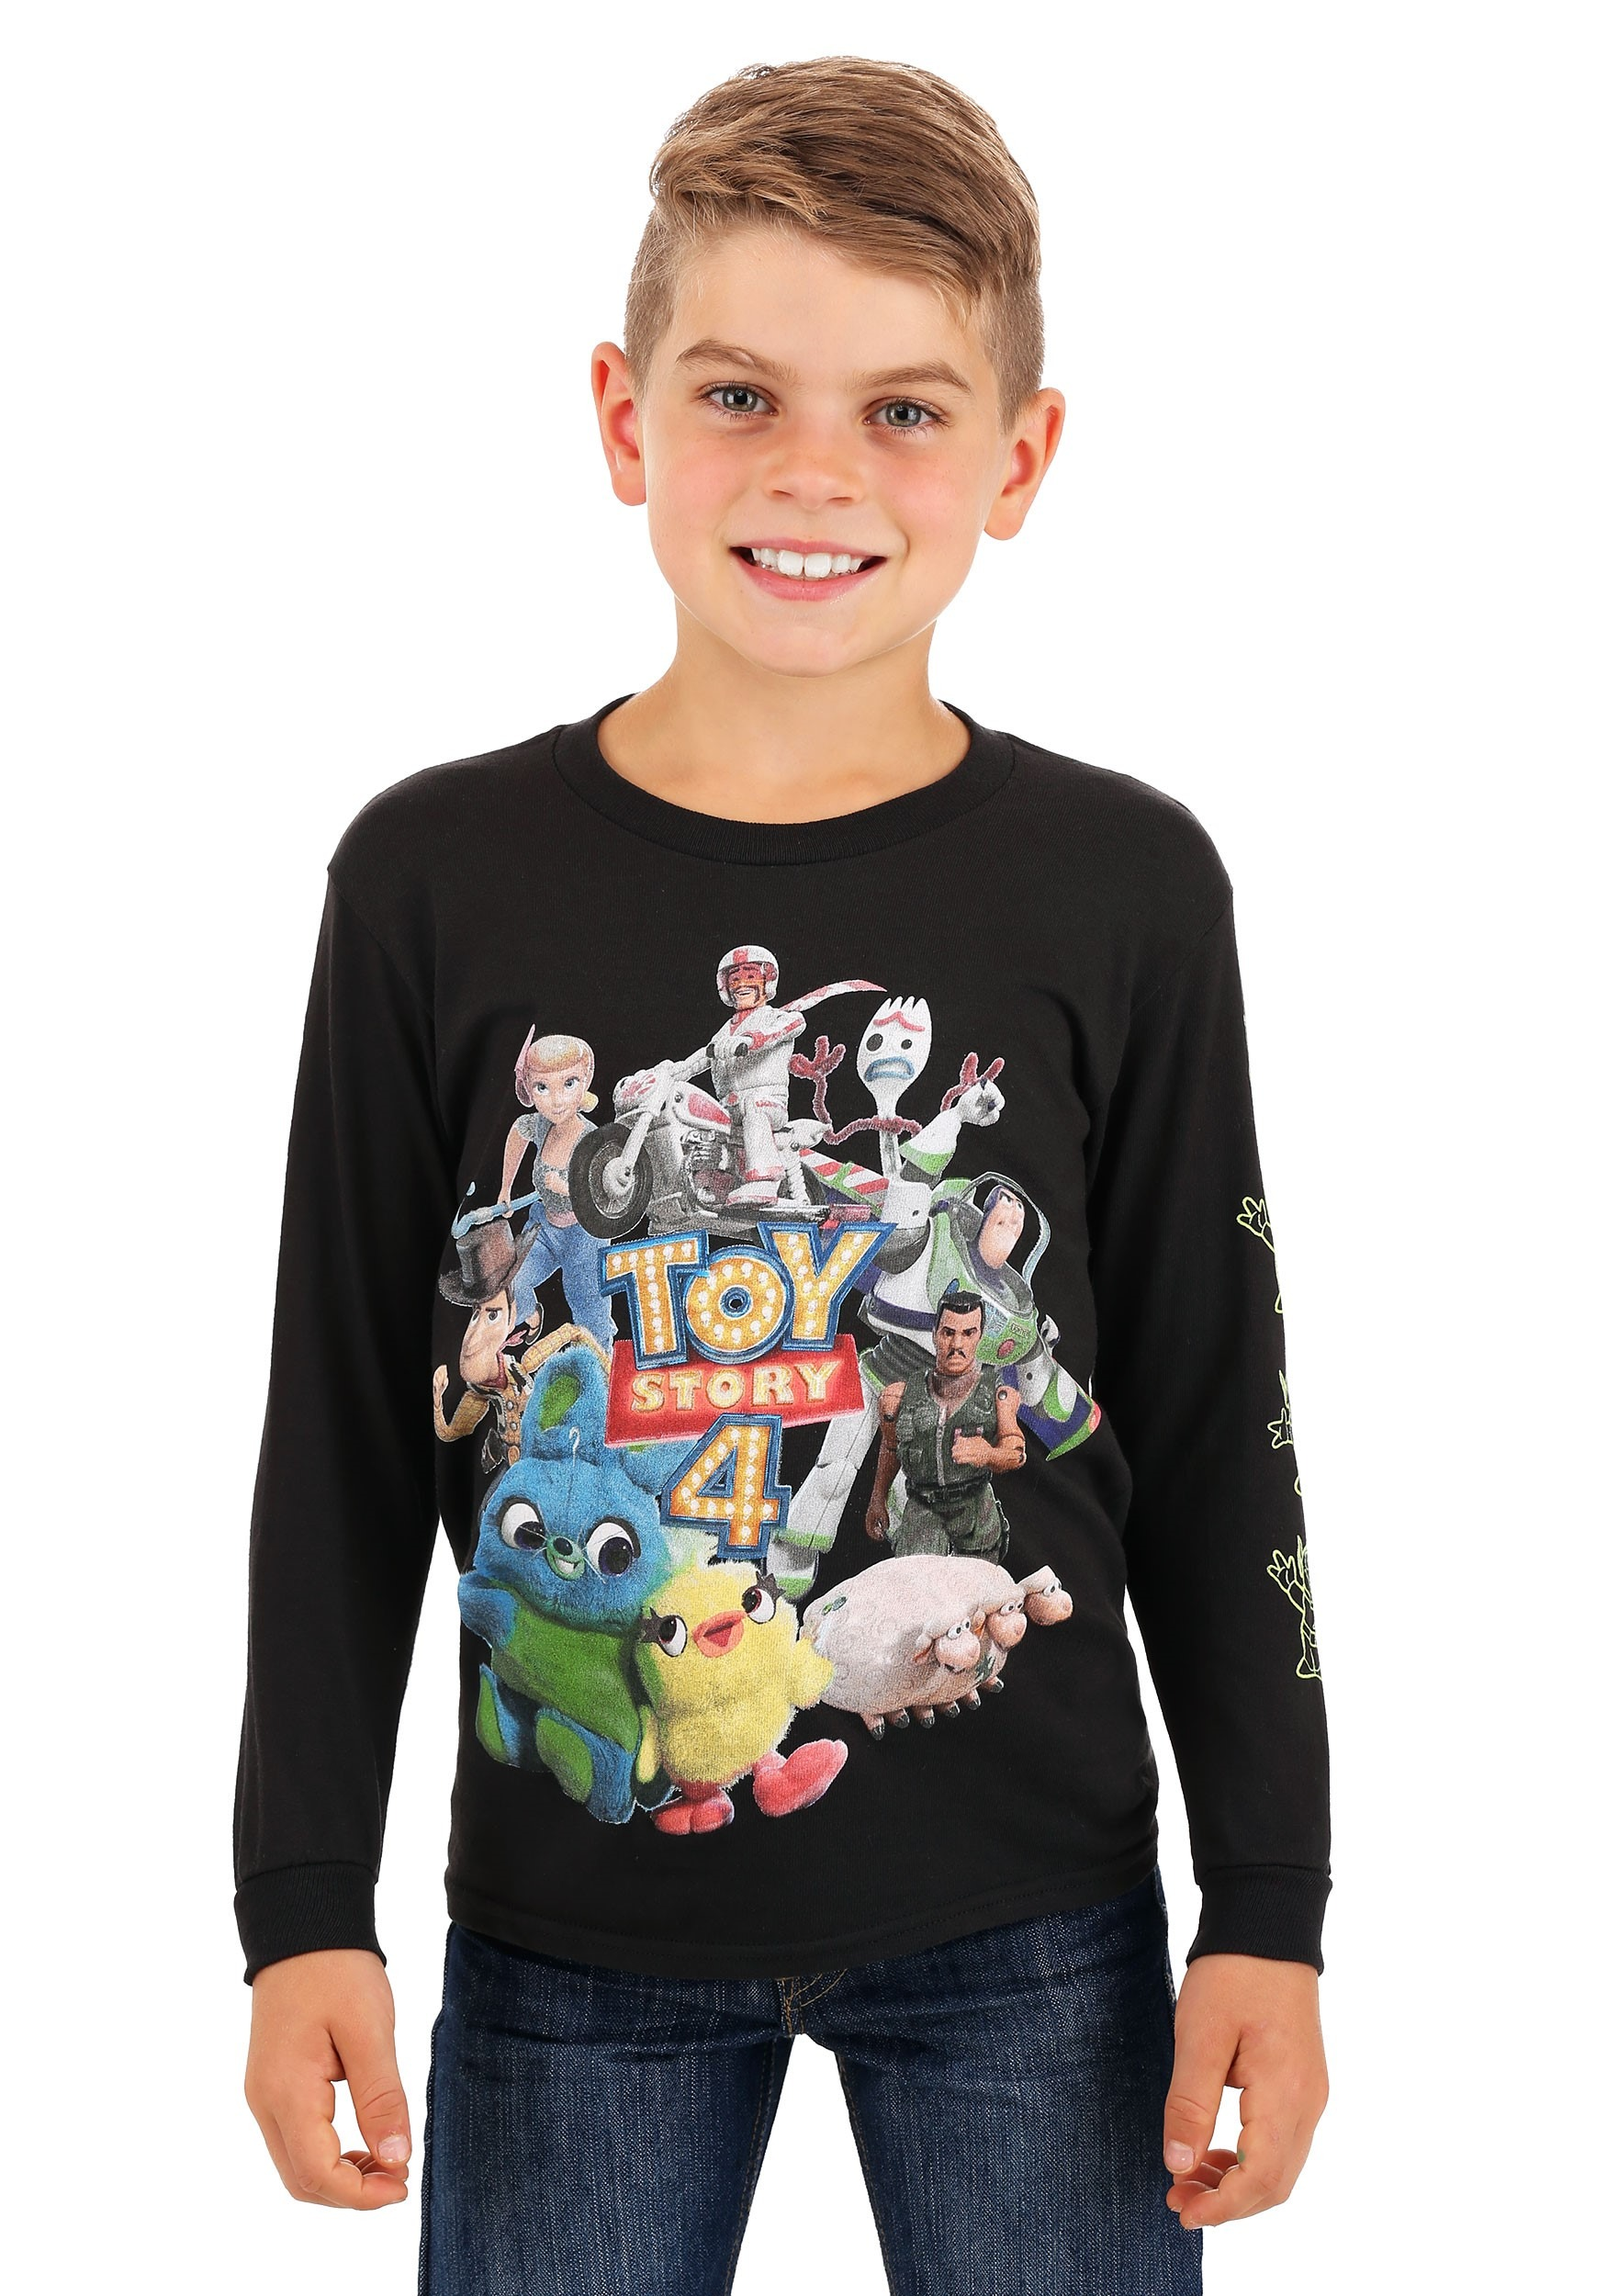 Toy Story 4 Character Group Long Sleeve Shirt for Boys